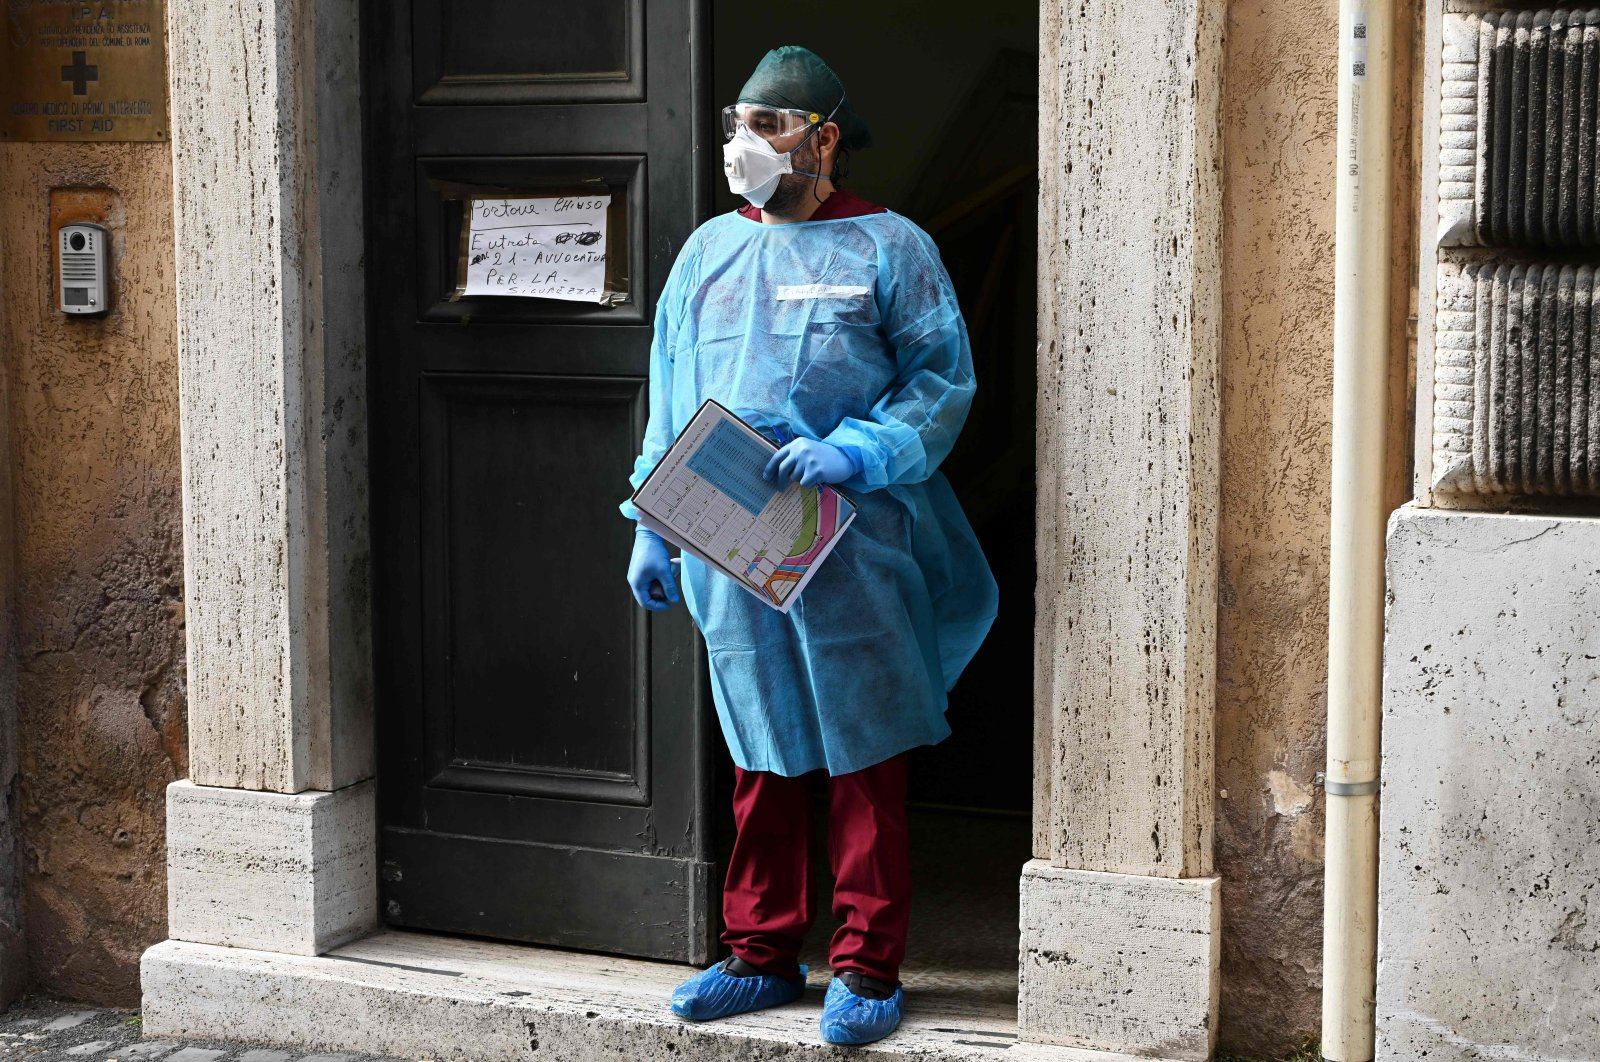 A medical worker welcomes people arriving to undergo serological tests for COVID-19 conducted on municipal workers, Rome, May 6, 2020. (AFP Photo)